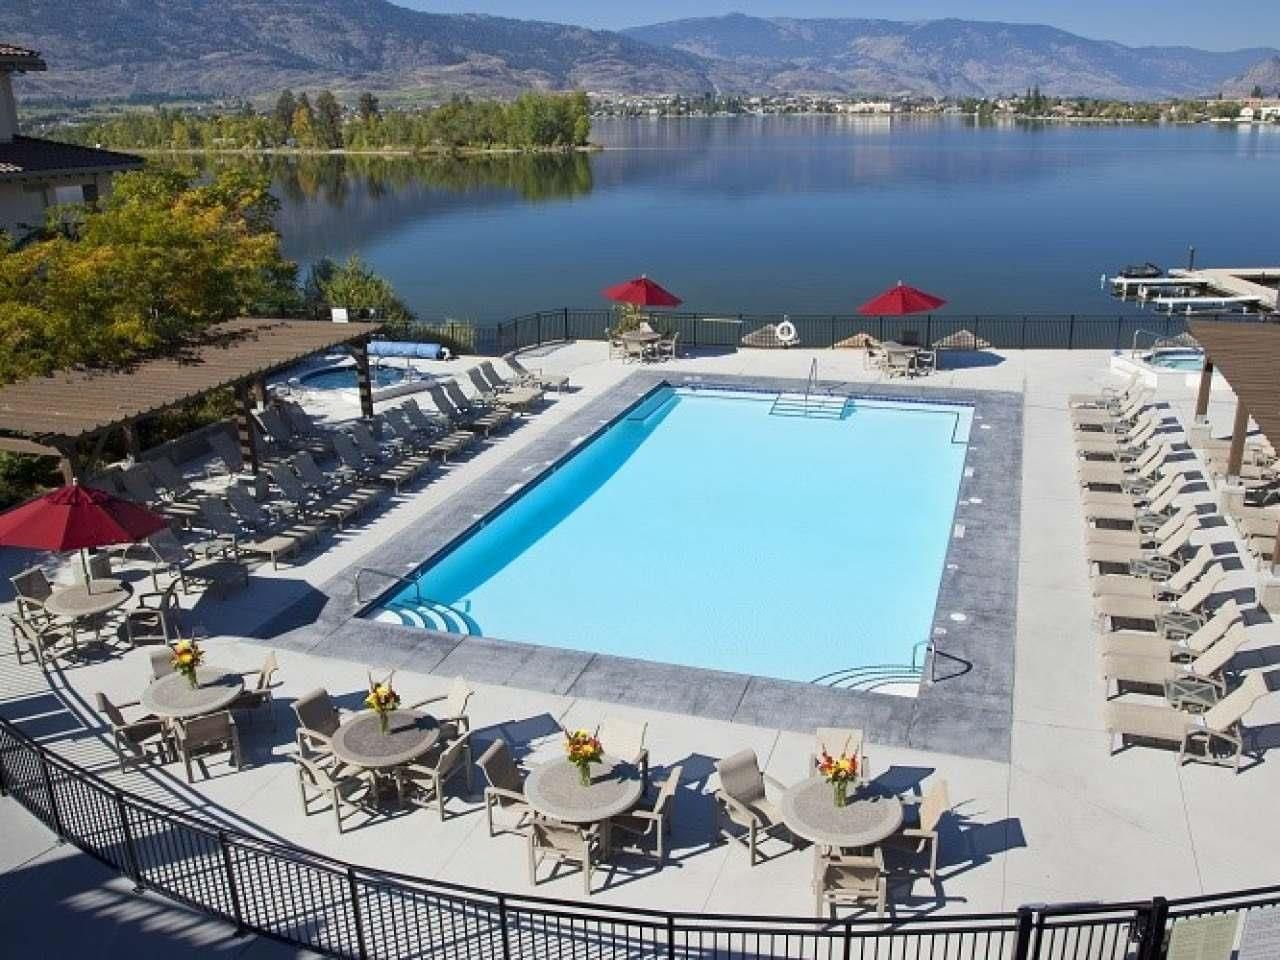 Main Photo: #334 4200 LAKESHORE Drive, in Osoyoos: House for sale : MLS®# 185234